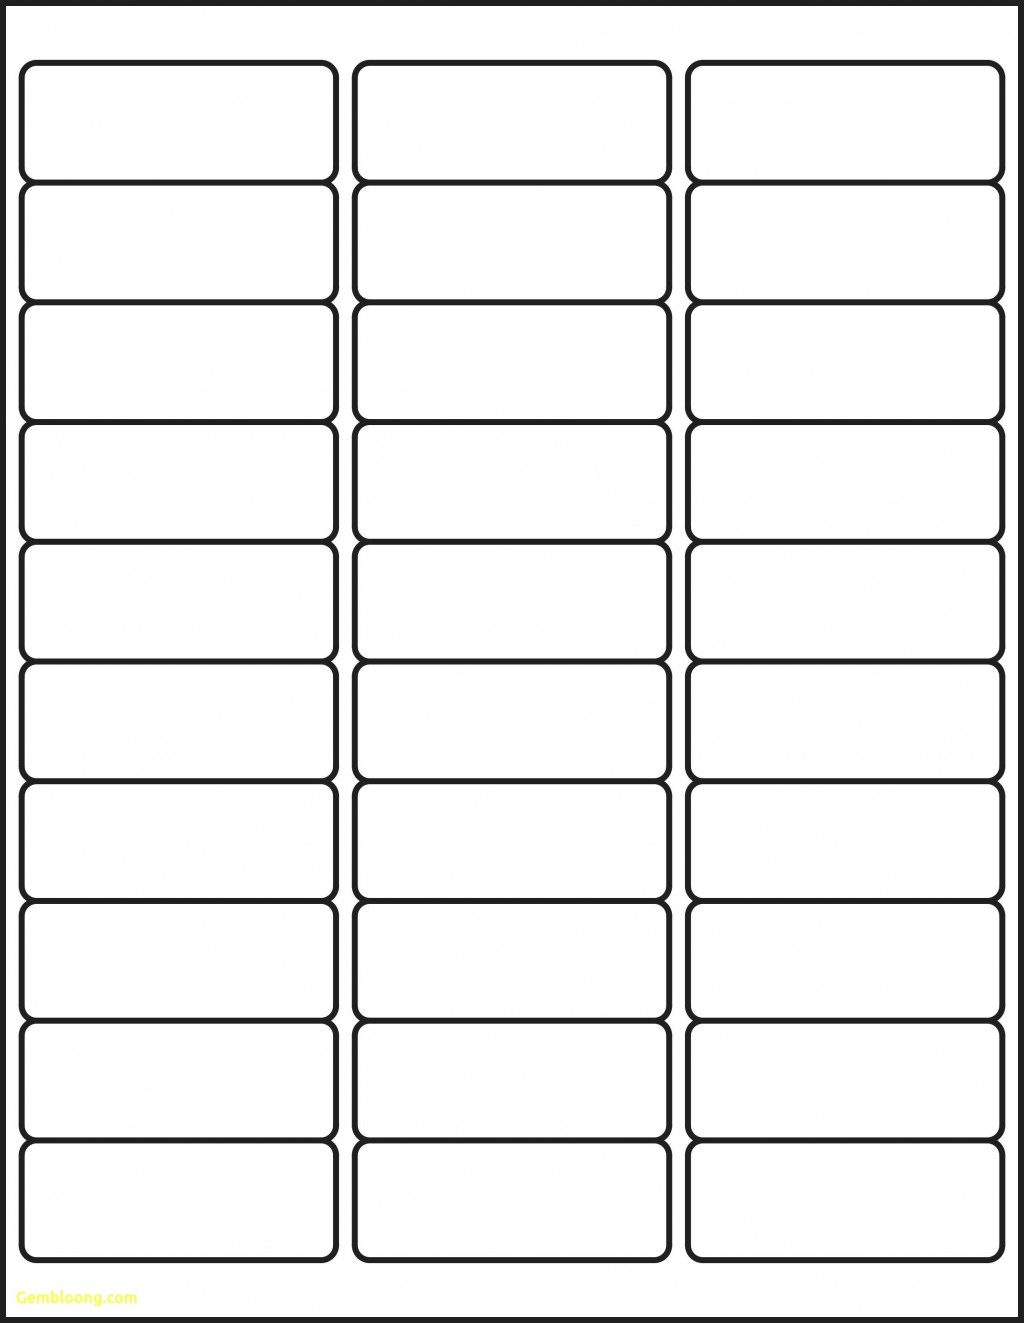 004 Dreaded Label Template For Word Picture  Avery 8 Per Sheet Free Circle A4Large